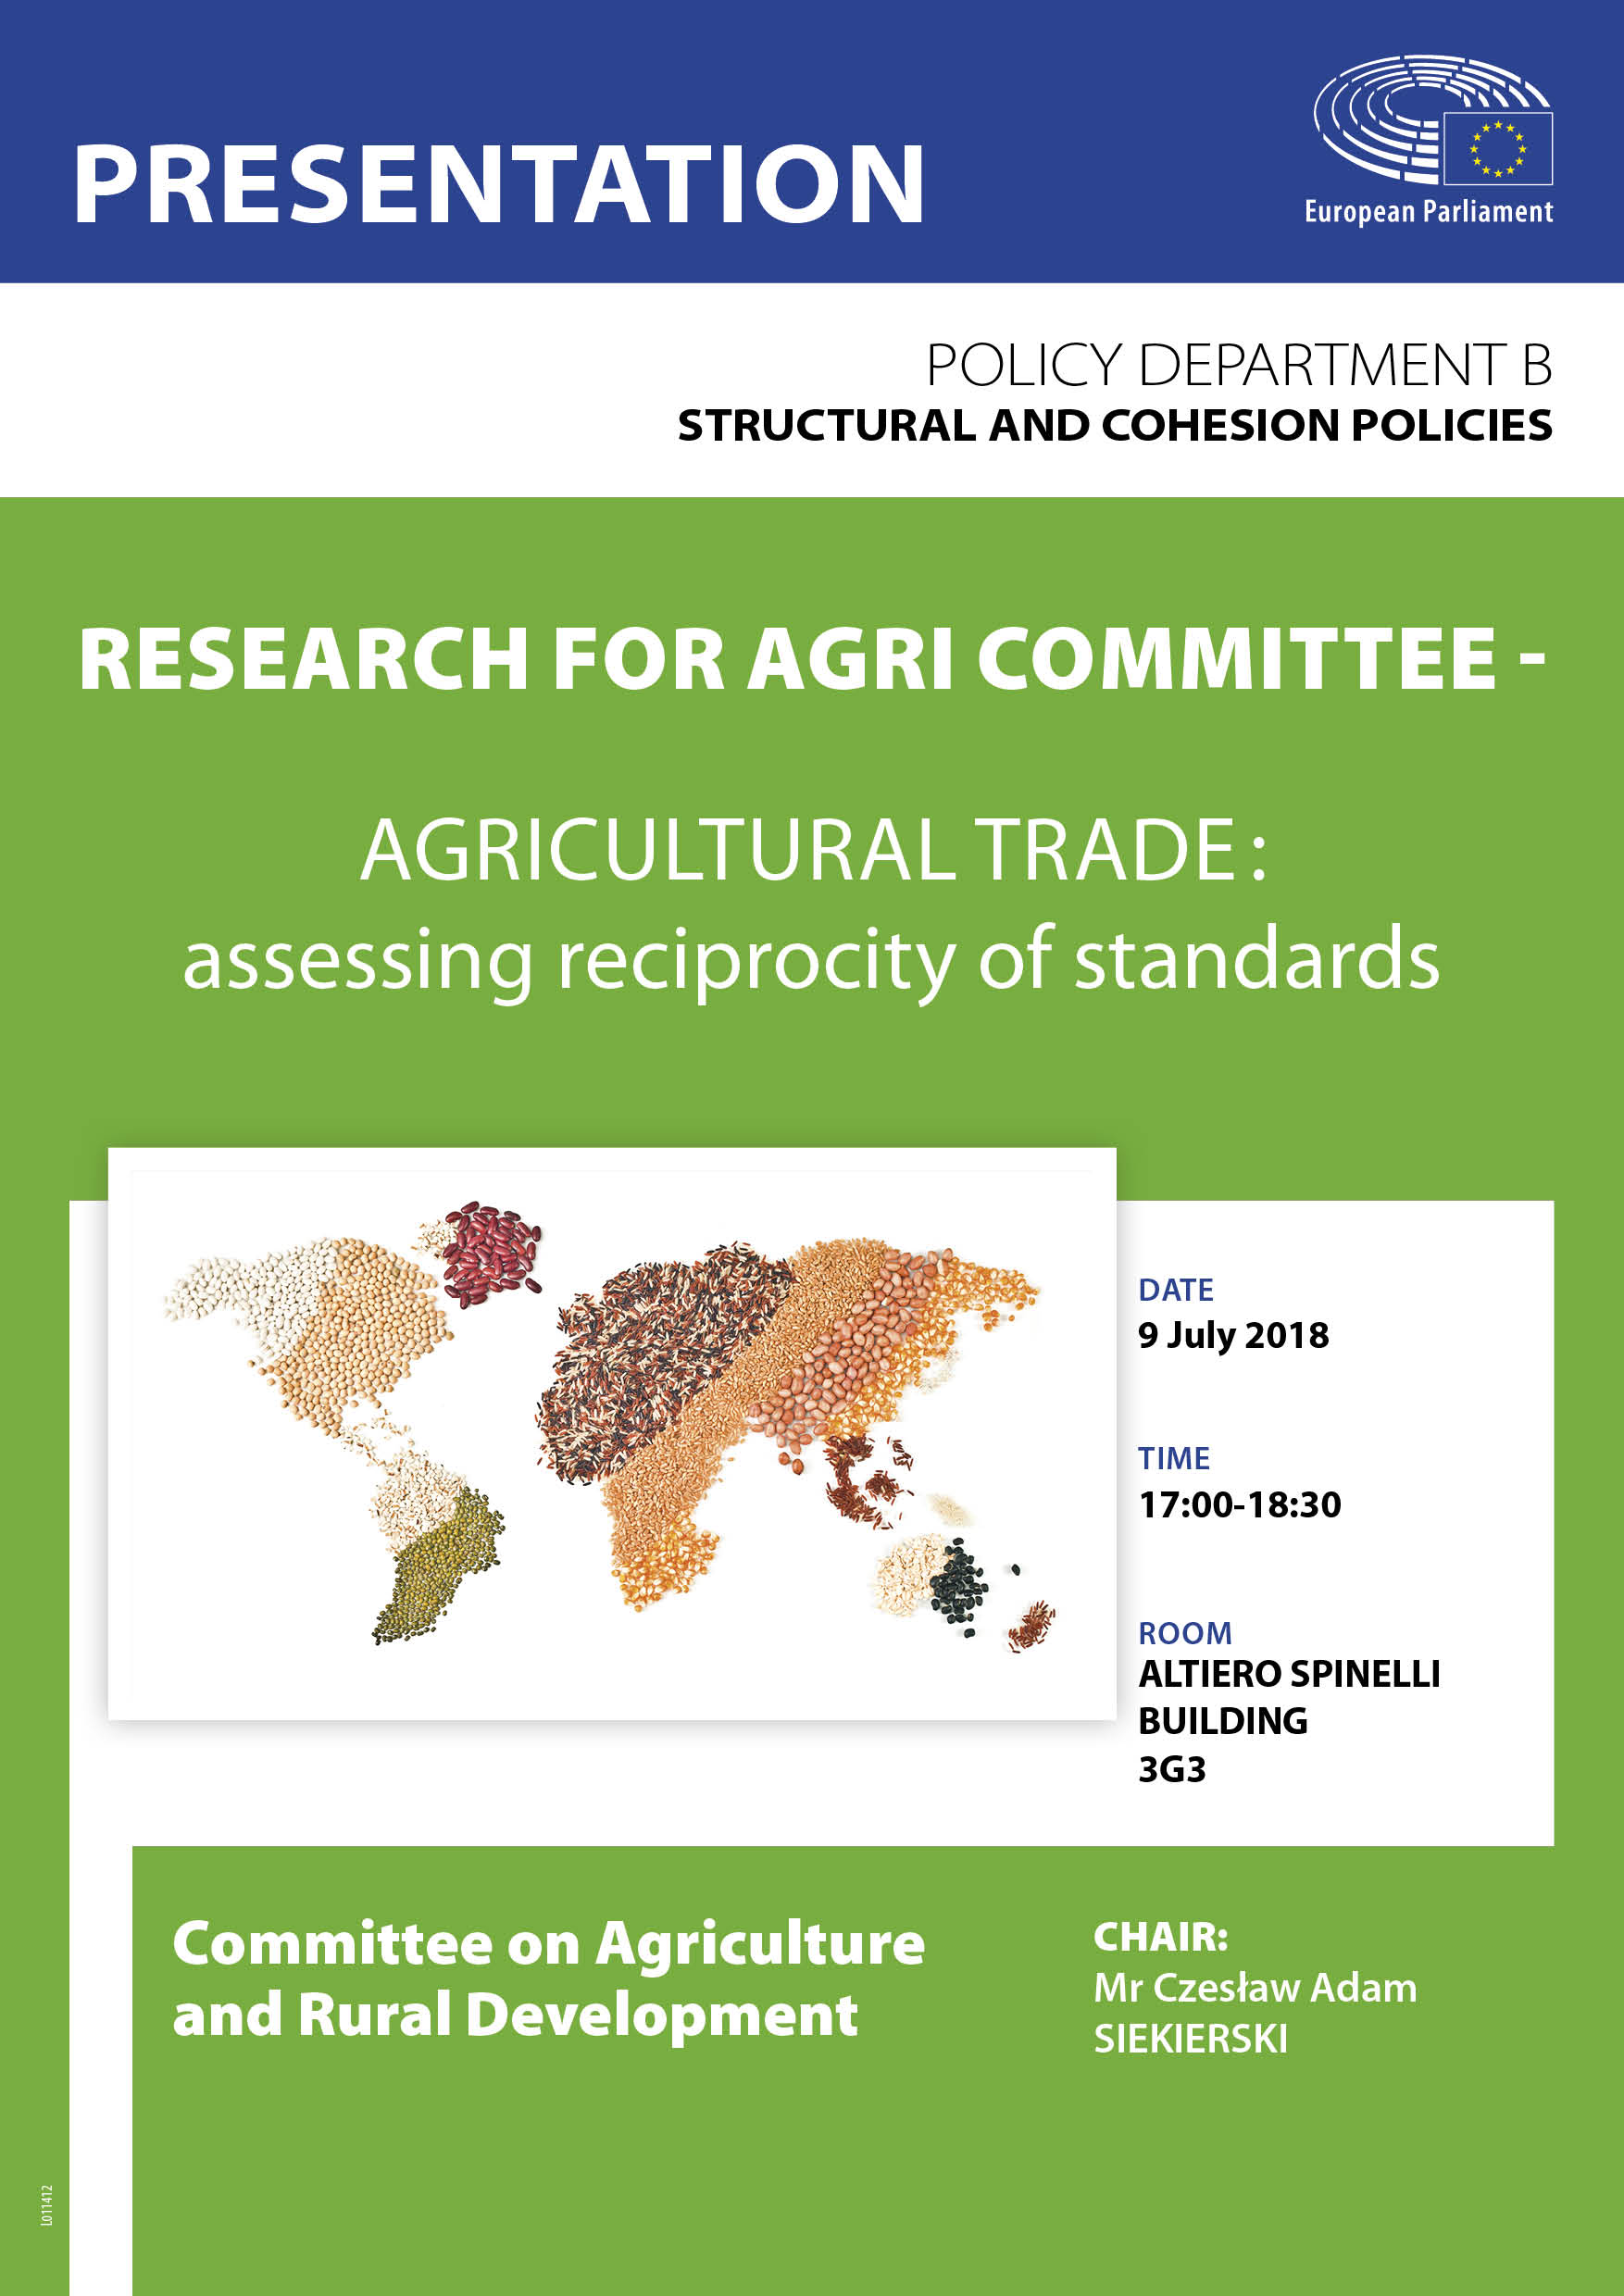 agri study presentation agricultural trade assessing reciprocity